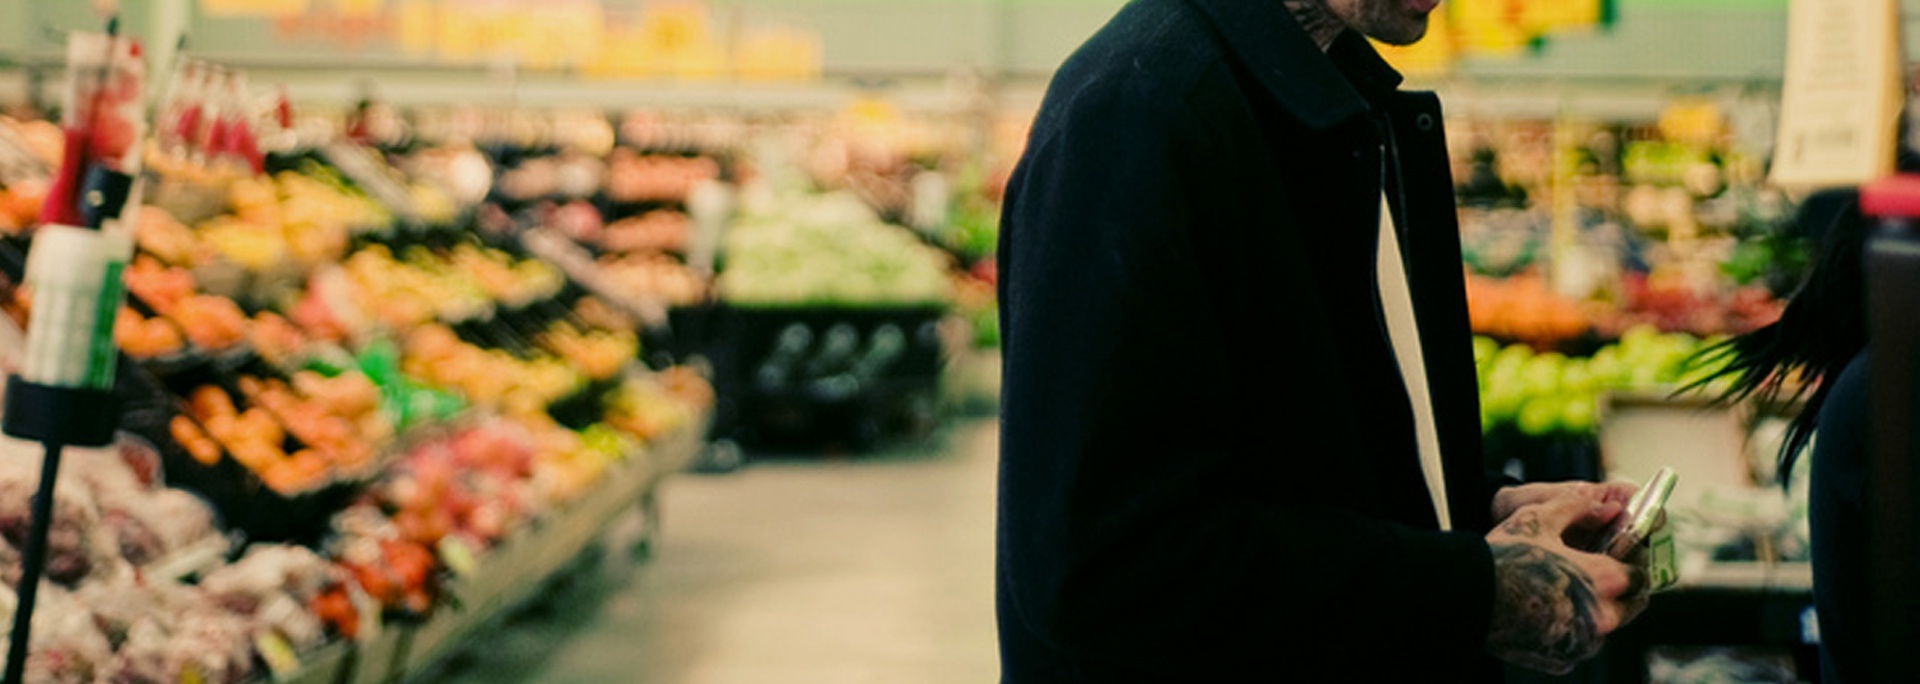 Man_in_Grocery_Section_cropped.jpg